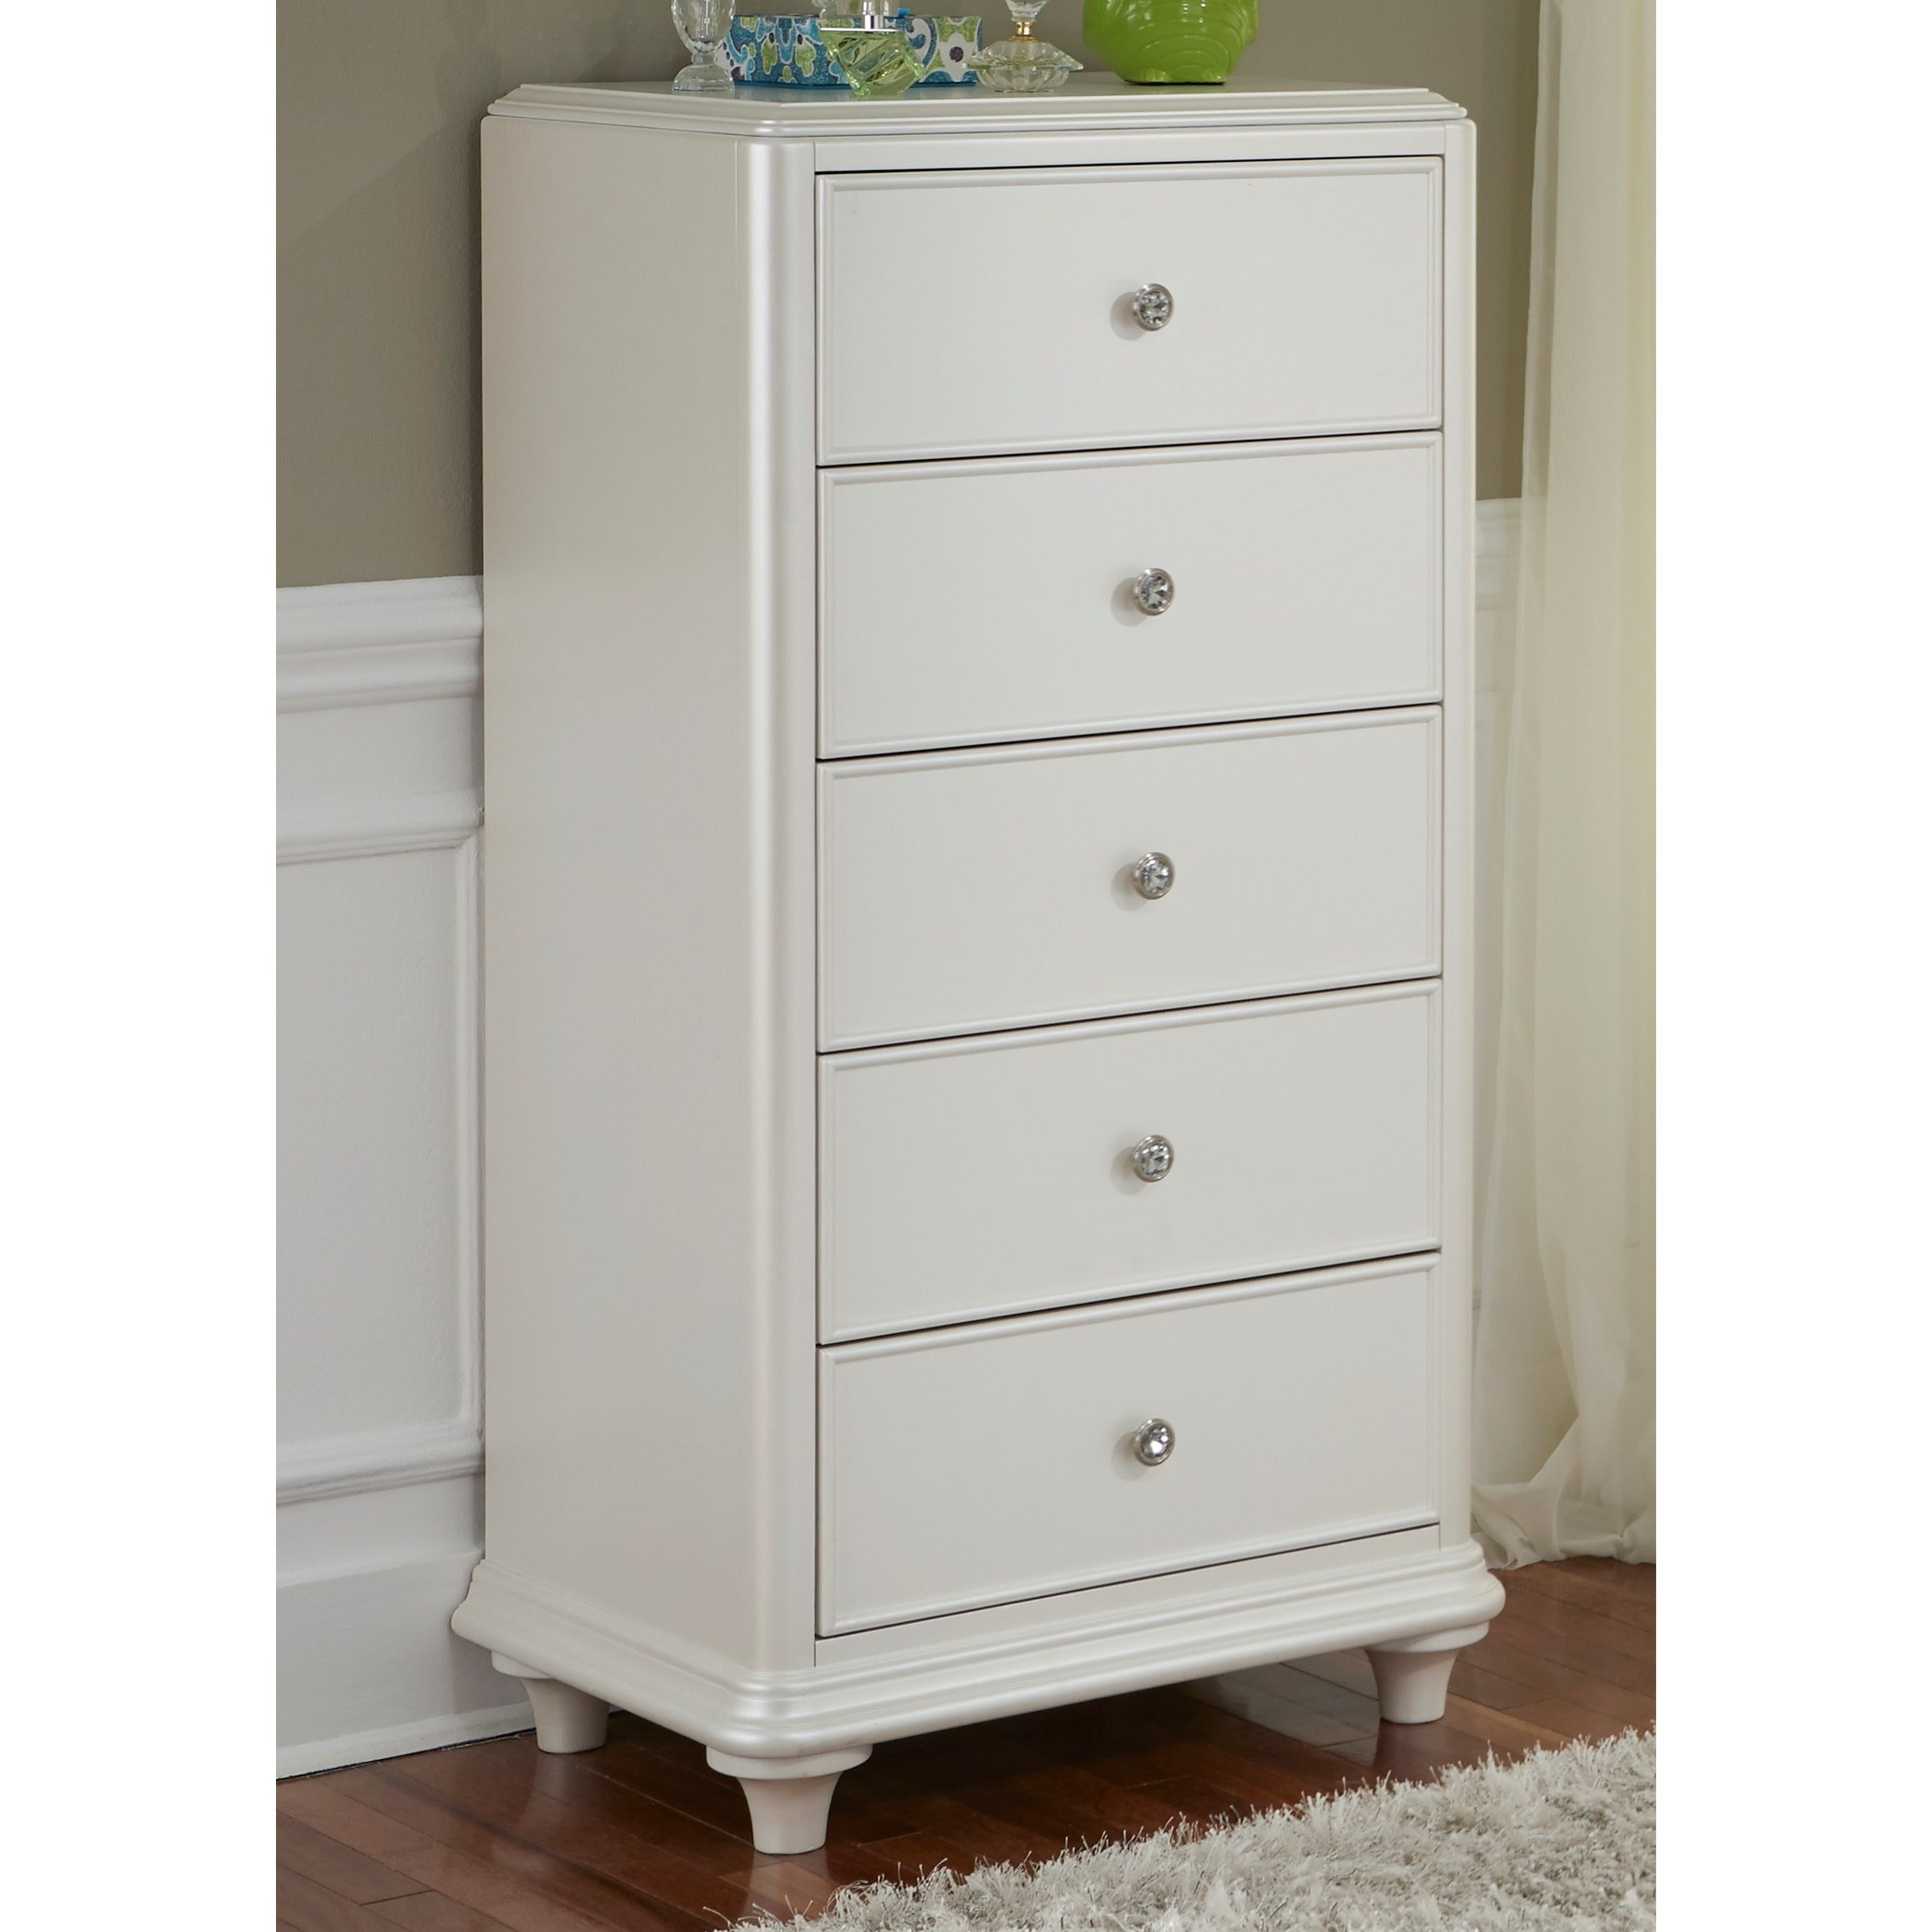 Stardust 5 Drawer Lingerie Chest by Libby at Walker's Furniture